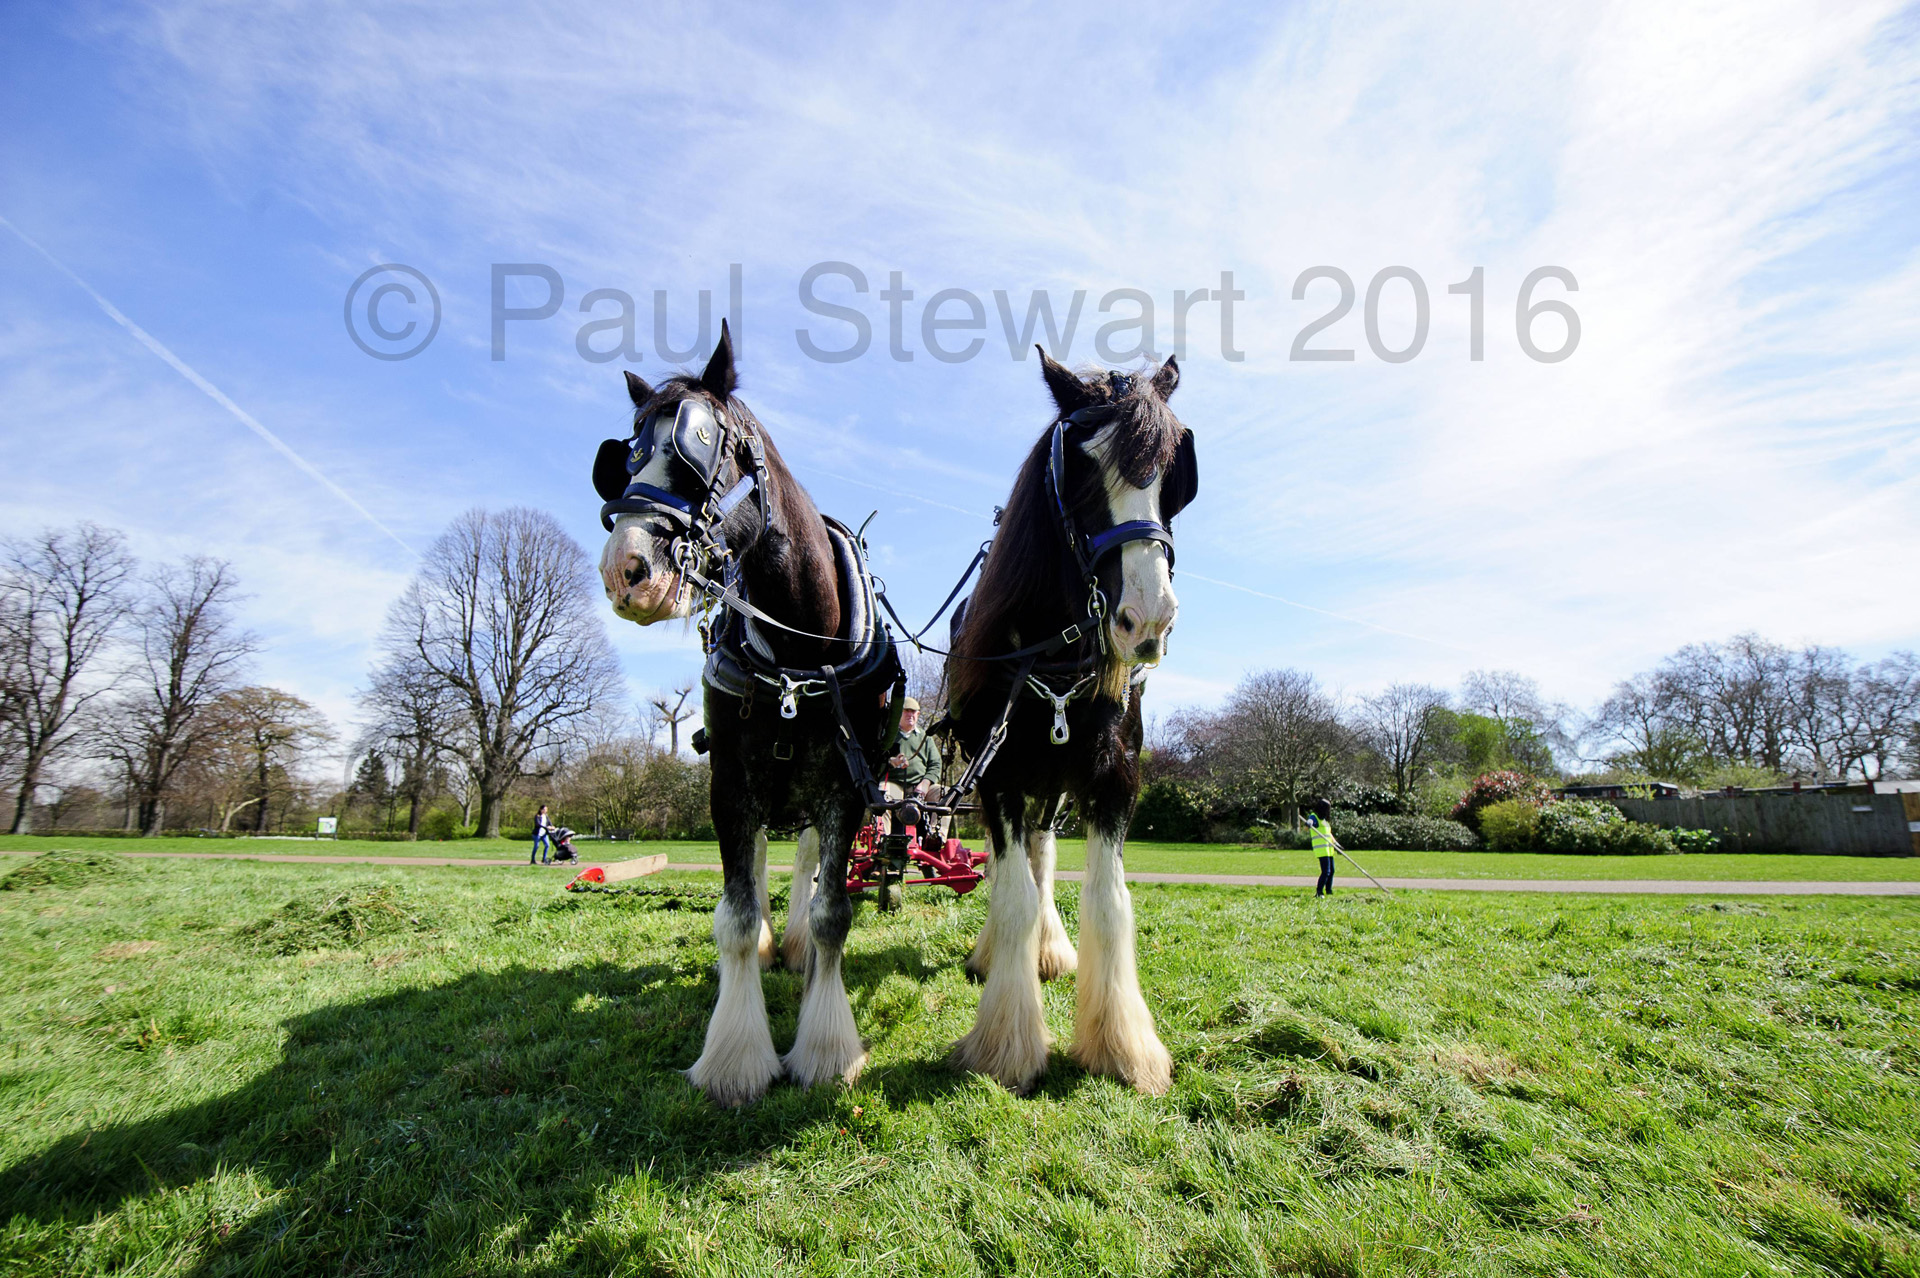 BRITAIN Hyde Park Kensington Image created:-12/04/2016 OPS: - A beautiful spring day in Hyde Park /Kensington Gardens, as Aragon and Royal (known as Roy) two of the shire horses of the last working herd in London, mow the grass for the first time this year. The herd is looked after and operated by Operation Centaur in association with the Royal Parks and Palaces. The team are being driven by Ed McDowell ©Paul Stewart 20160412 07917 65 26 36 @@PS_Shires-003.jpg